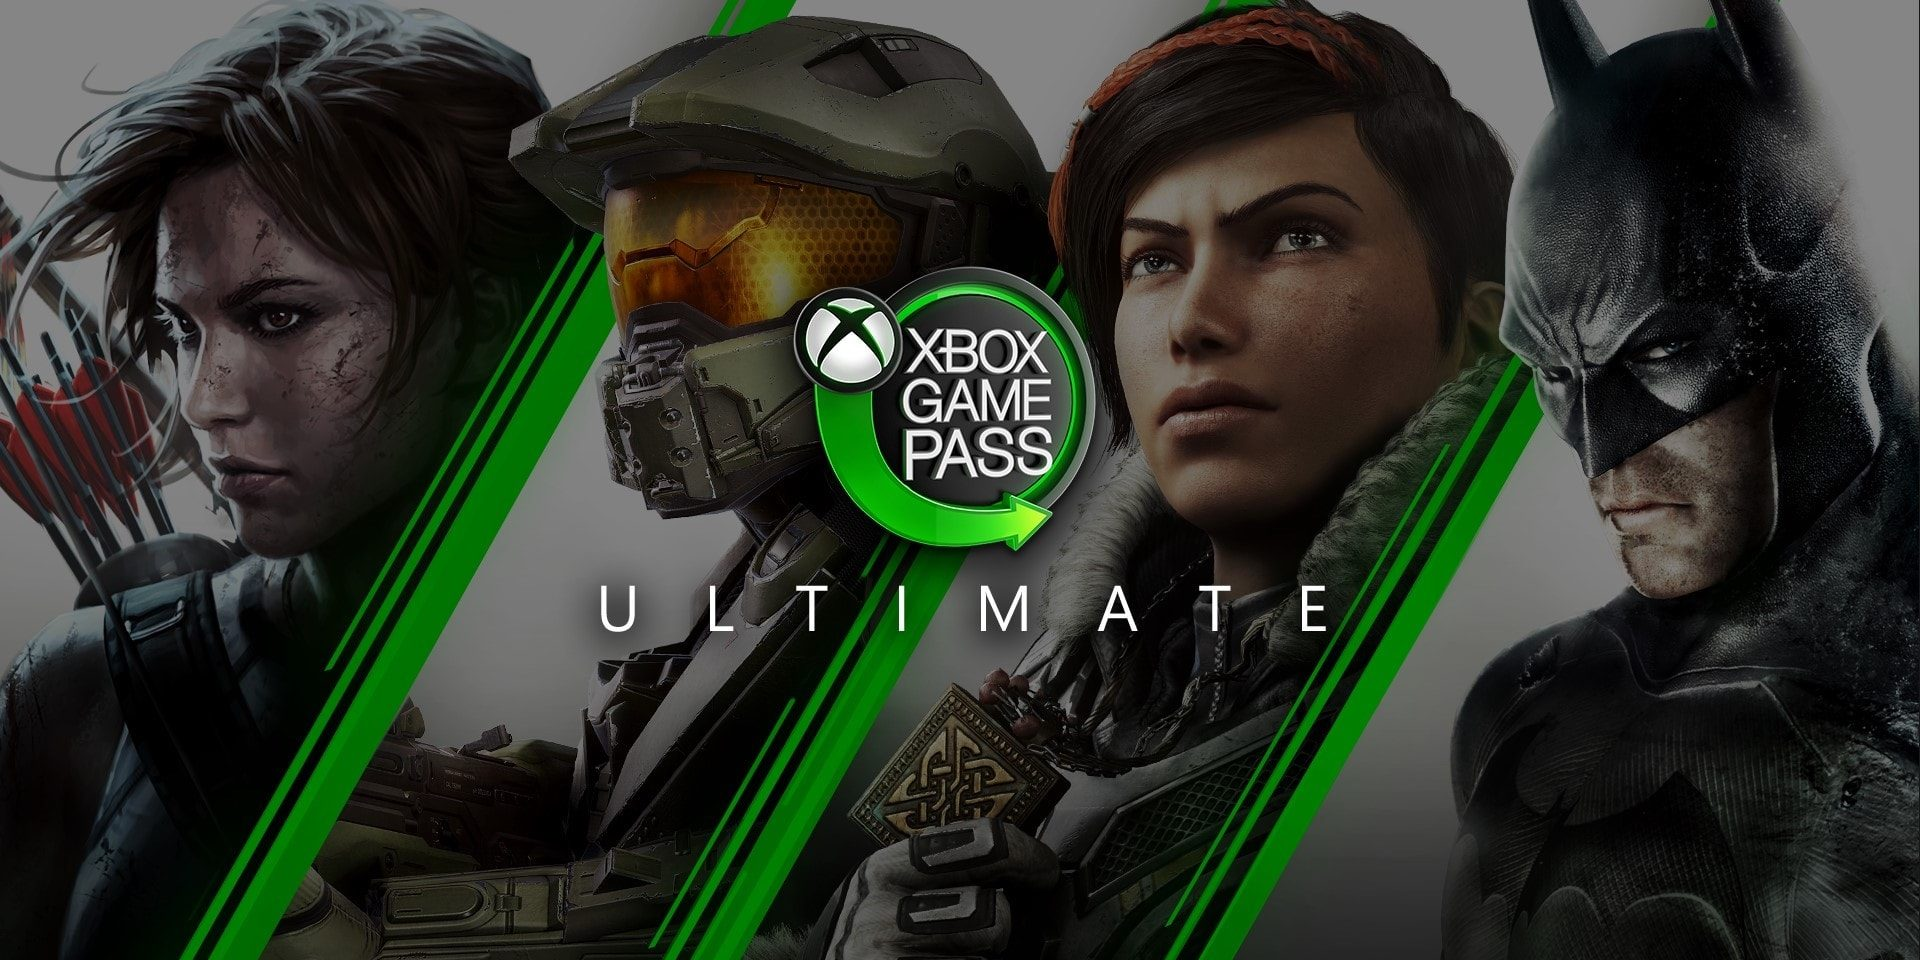 Amazon extends Xbox Game Pass Ultimate subs by 3-months for $25 (Reg. $45) - 9to5Toys